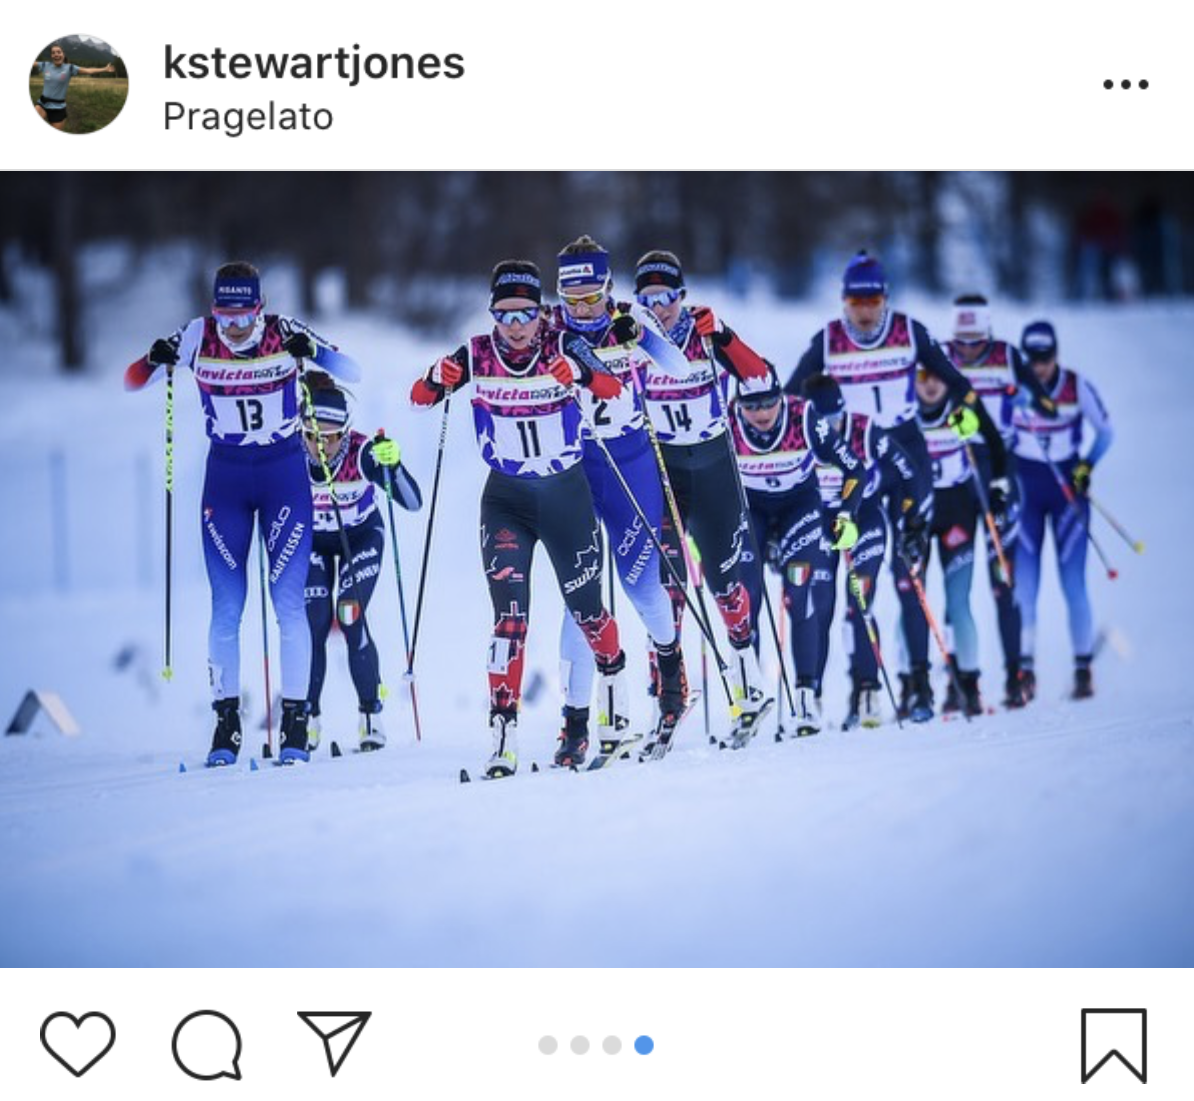 Katherine Stewart-Jones leads the mass start on the way to a Canadian 1-2 at the OPA Cup in Pragelato, Italy. (Photo: Athlete Instagram, credited to @damianobenedettophoto)